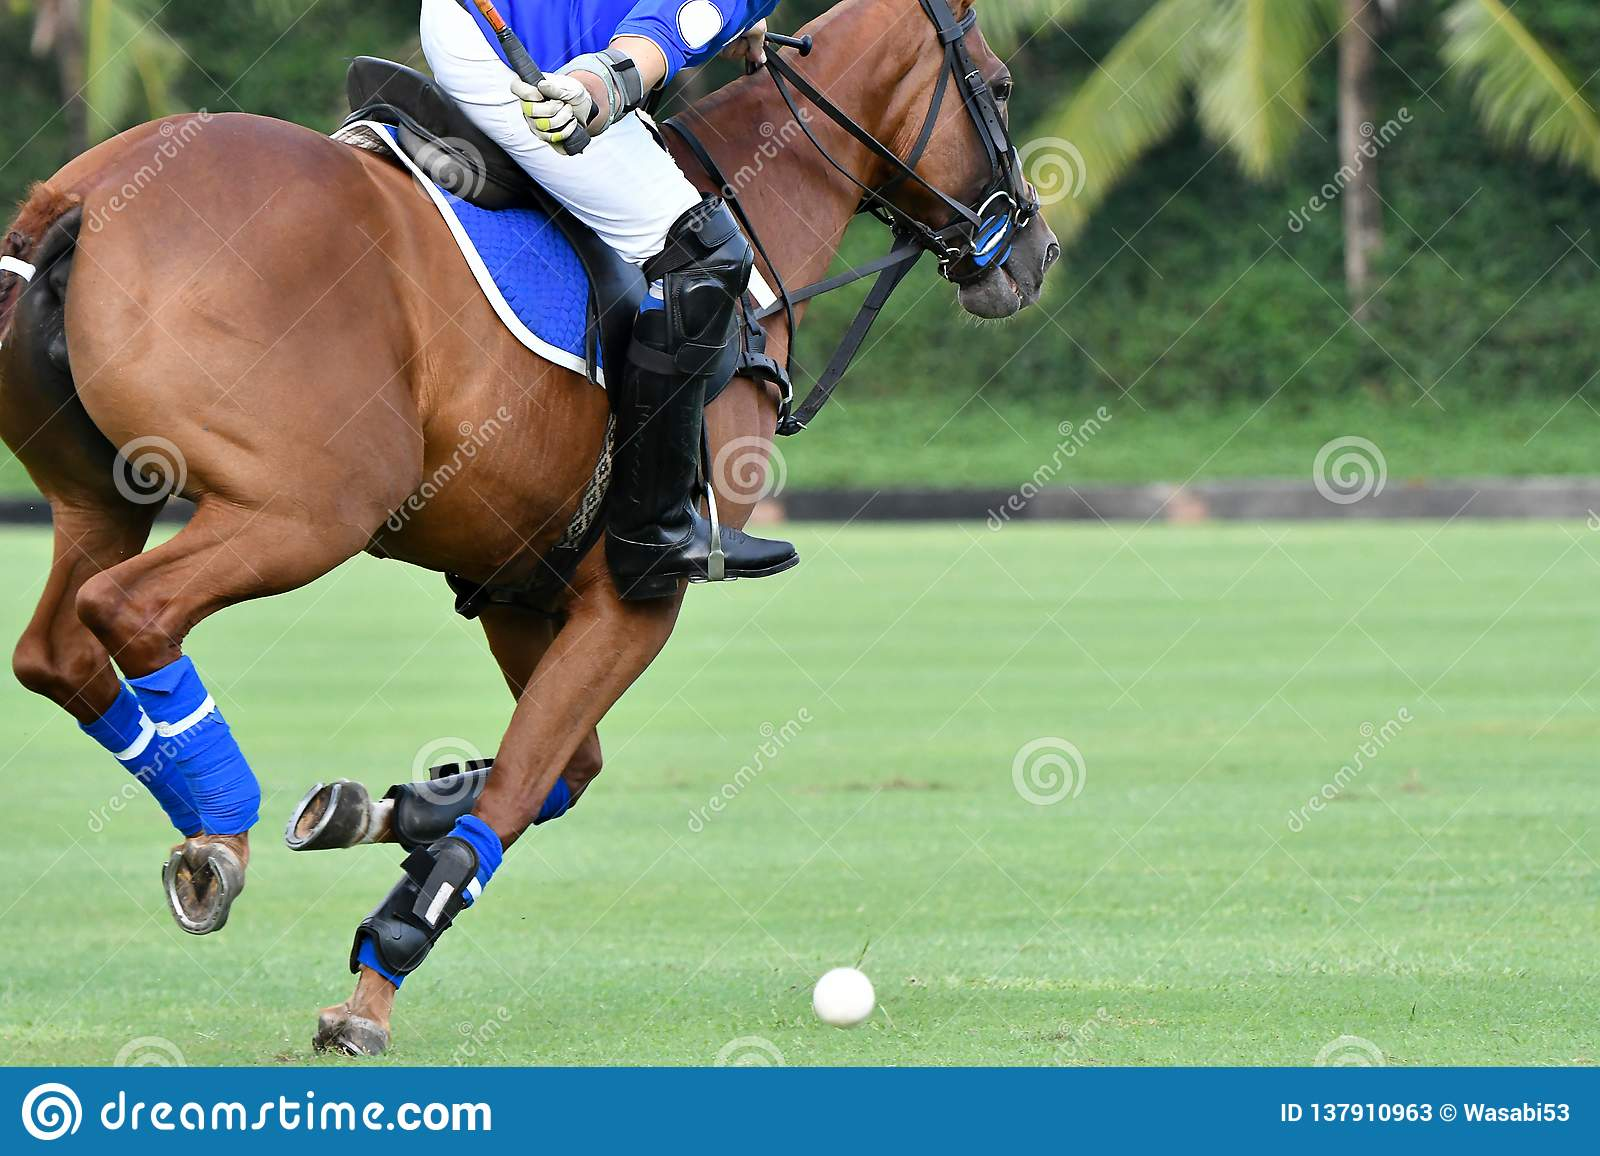 Polo Player Playing Polo Horse During The Games Stock Image Image Of Competition Race 137910963